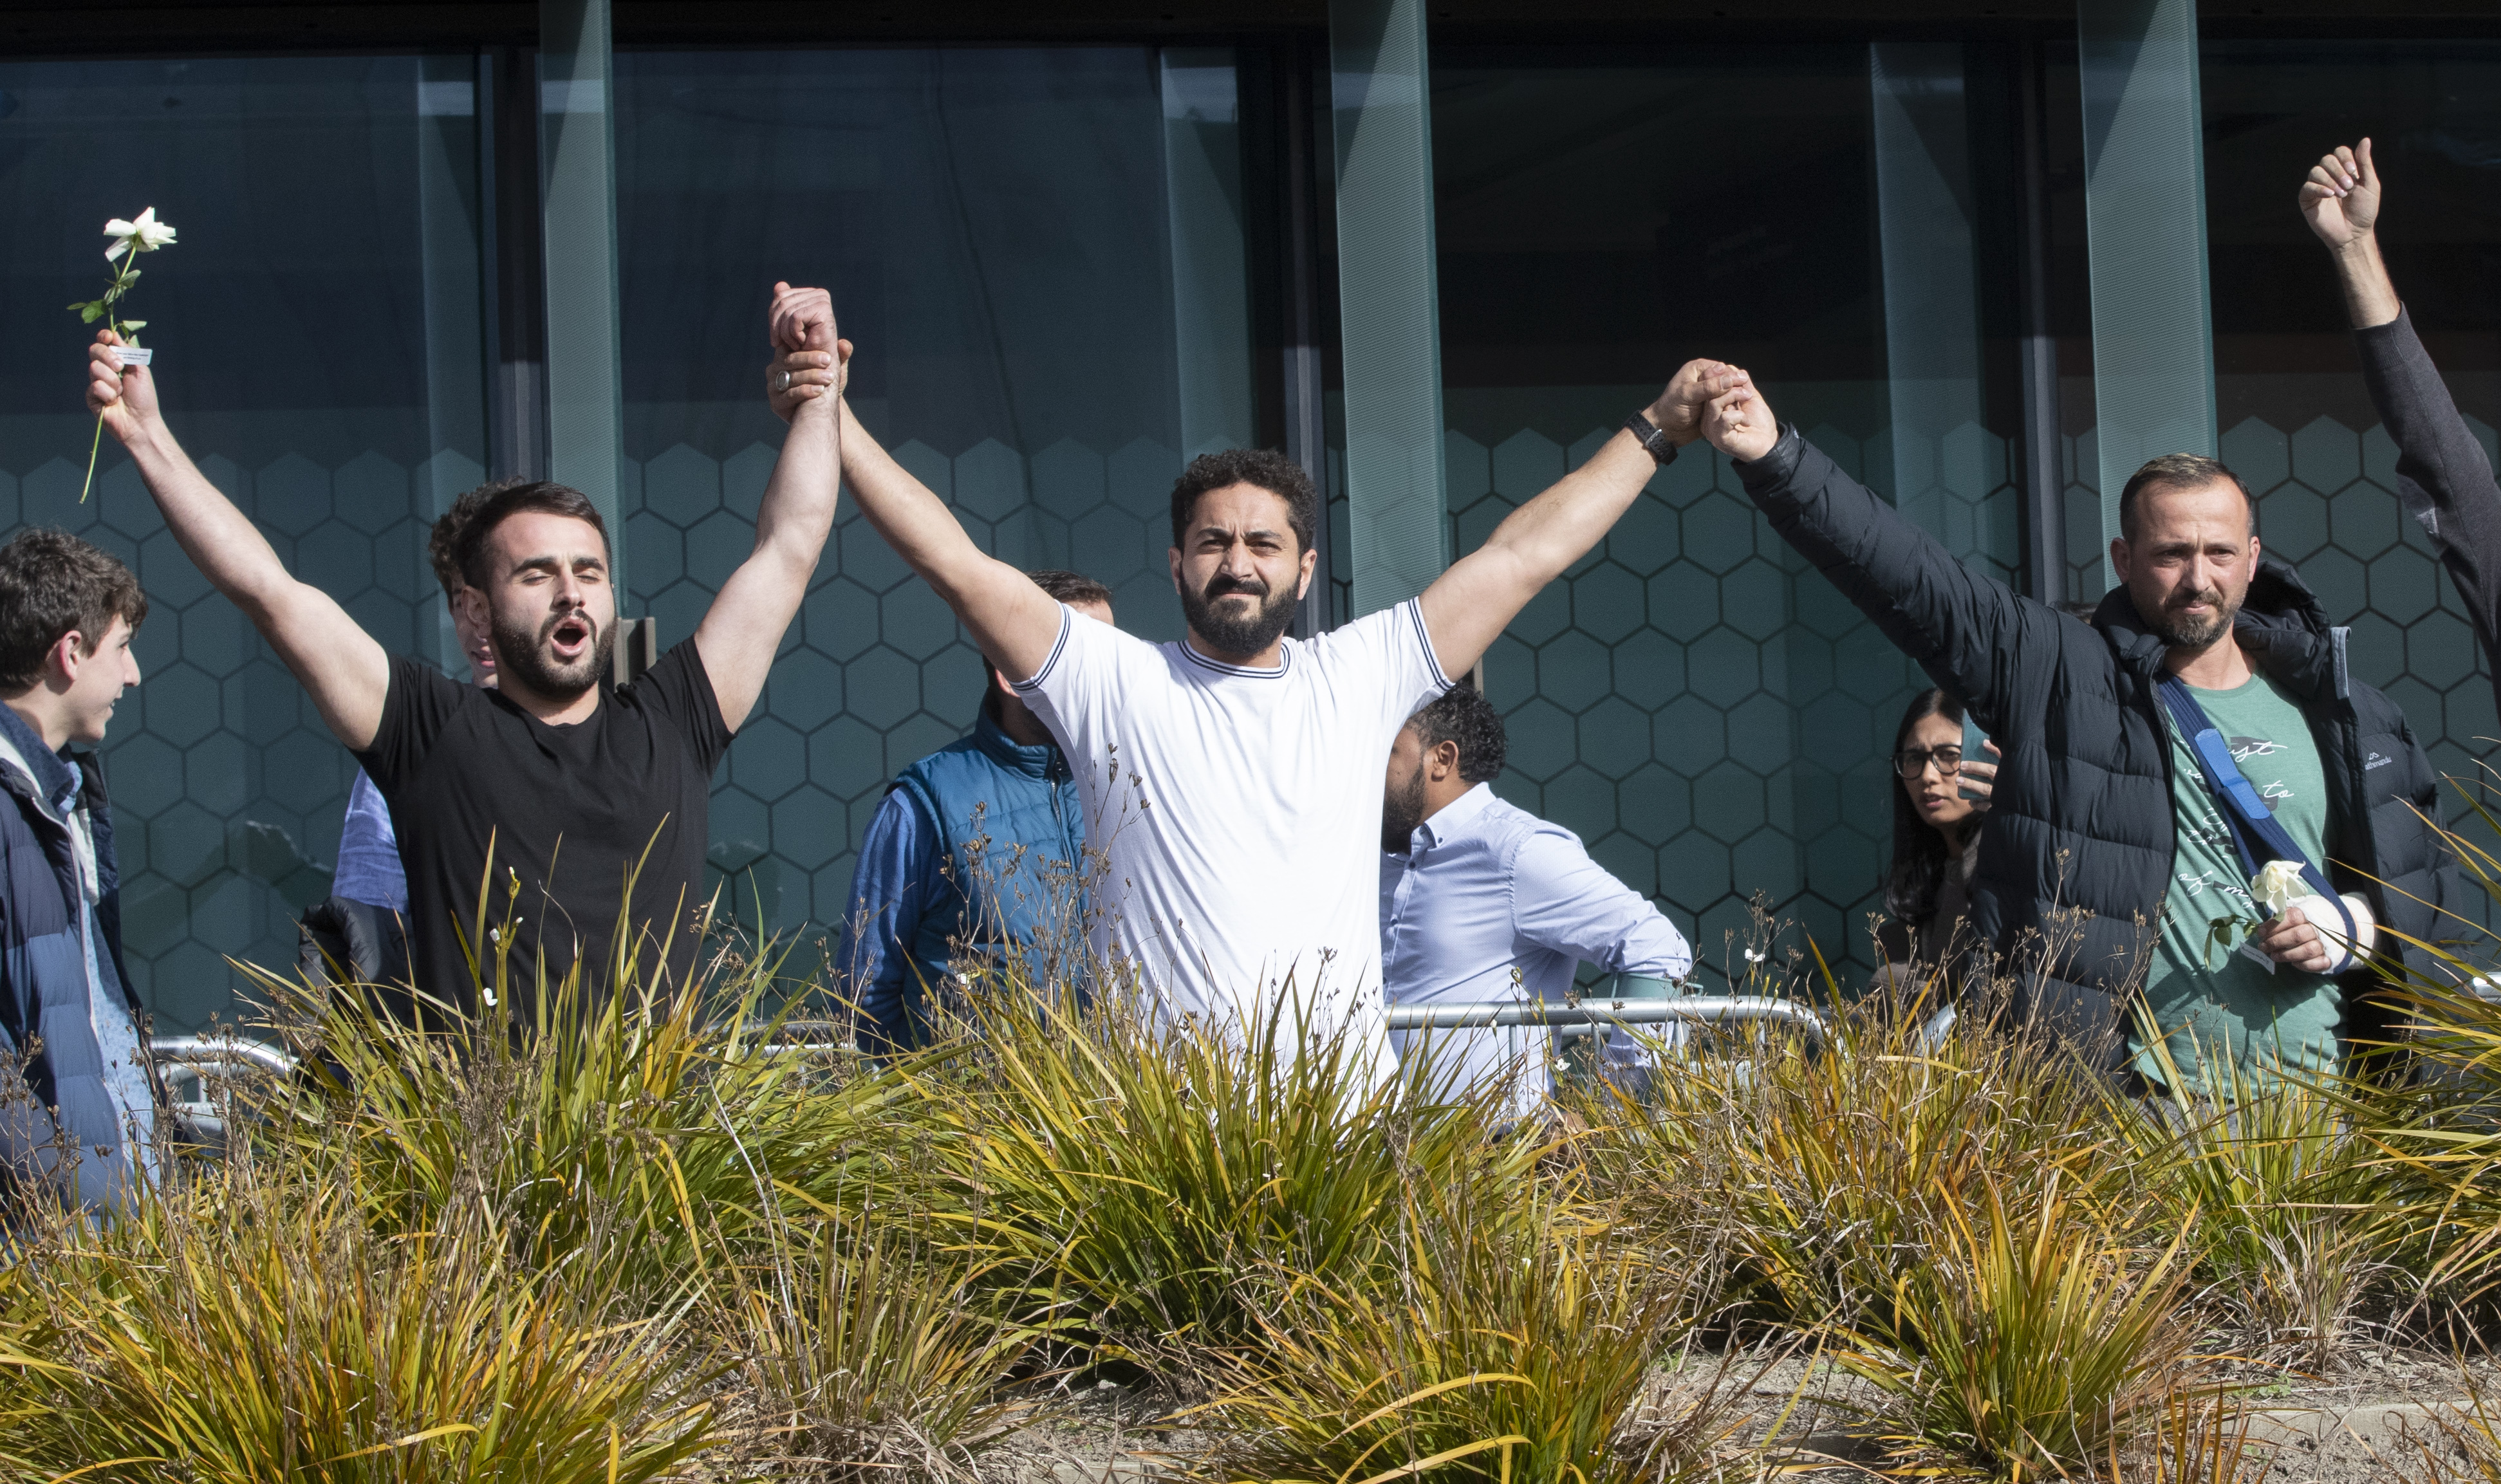 Mosque shooting survivors from left, Mustafa Boztas, Wassail Daragmih and Temel Atacocugu celebrate as they leave the Christchurch High Court after the sentencing hearing for Australian Brenton Harrison Tarrant, in Christchurch, New Zealand, Thursday, Aug. 27, 2020. Tarrant, a white supremacist who killed 51 worshippers at two New Zealand mosques in March 2019 was sentenced to life in prison without the possibility of parole. Photo: AP